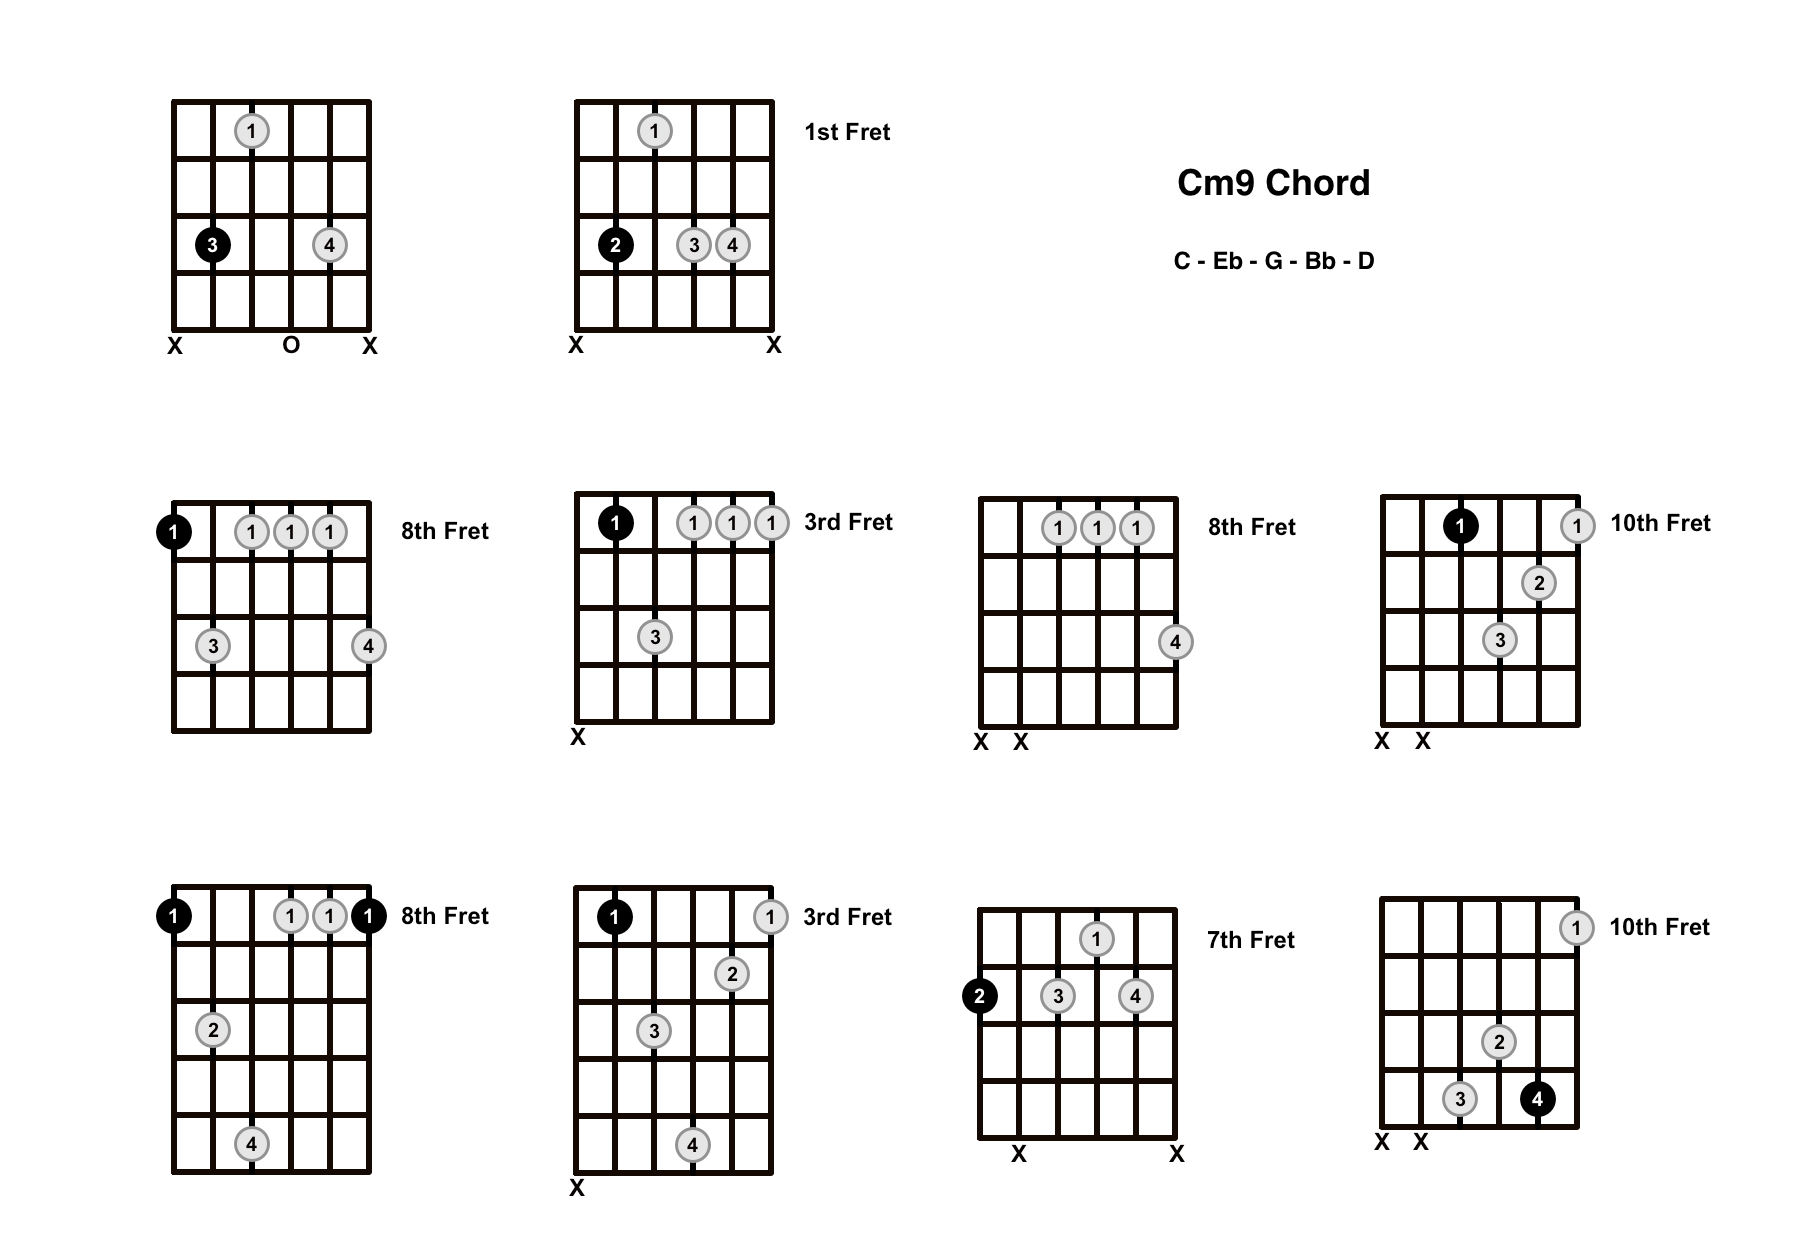 Cm9 Chord On The Guitar (C Minor 9) – Diagrams, Finger Positions and Theory